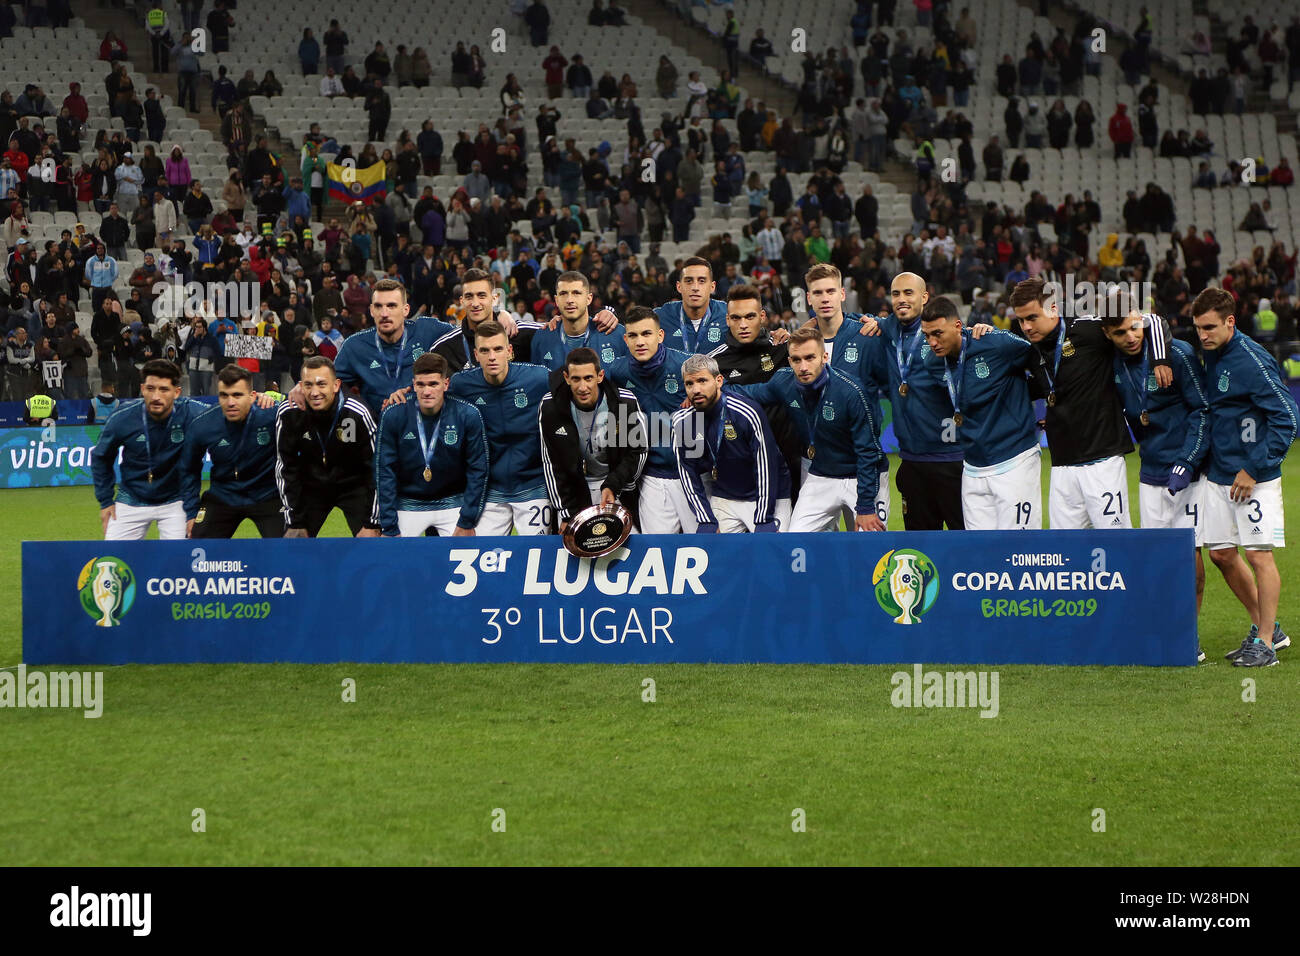 Sao Paulo, Brazil. 6th July, 2019. Argentina's players pose with their bronze medals after the 3rd place match of Copa America 2019 between Argentina and Chile in Sao Paulo, Brazil, July 6, 2019. Credit: Rahel Patrasso/Xinhua/Alamy Live News - Stock Image